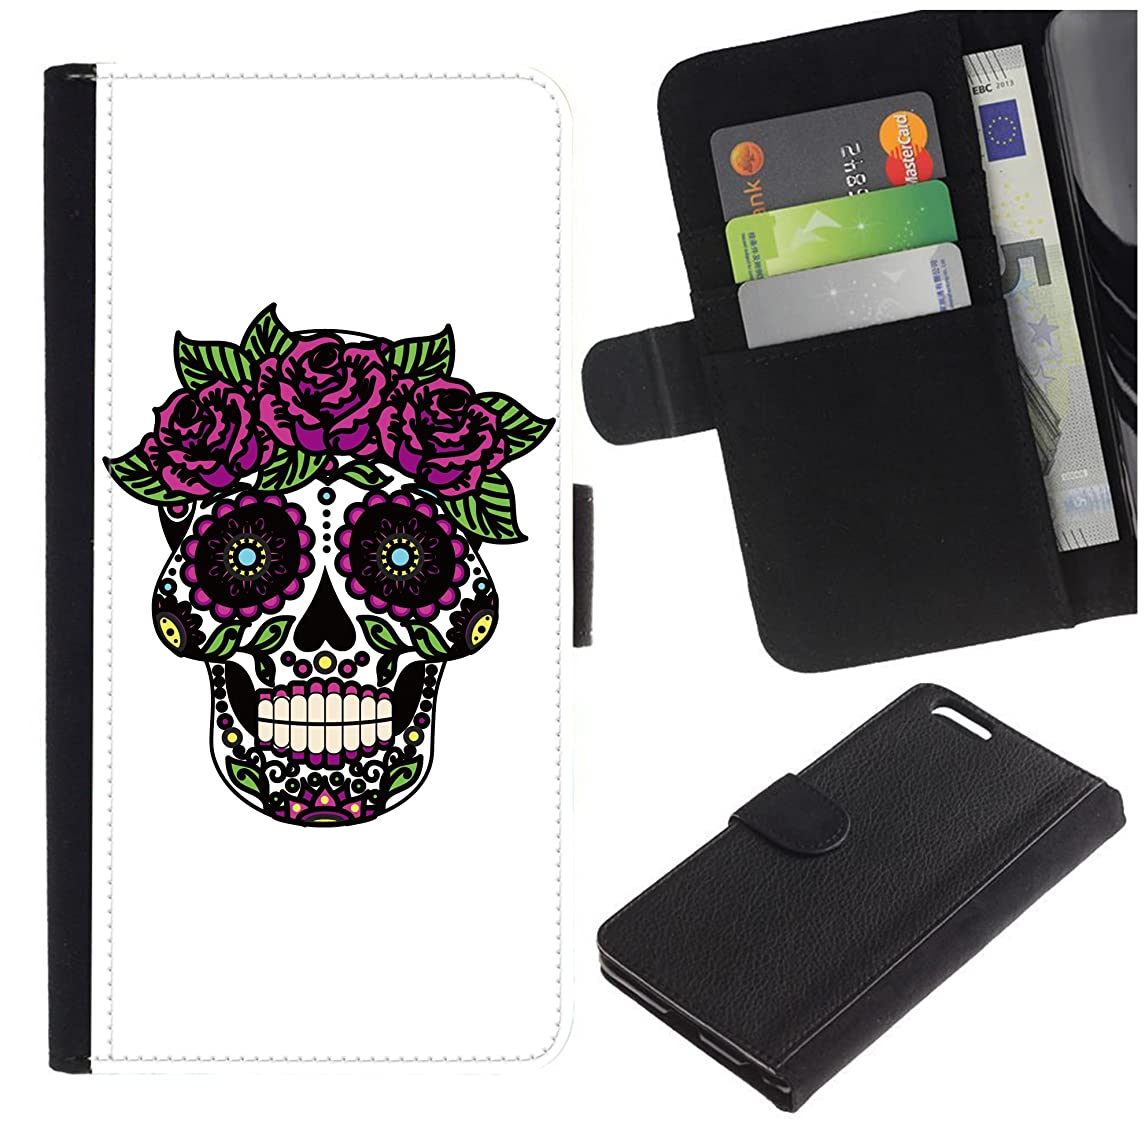 [Candy Skull/Sugar Skull] for LG Aristo Case/LG Phoenix 3 / K8 2017 / Fortune/Risio 2 / K4 2017 / V3, Flip Leather Wallet Holsters Pouch Skin Case